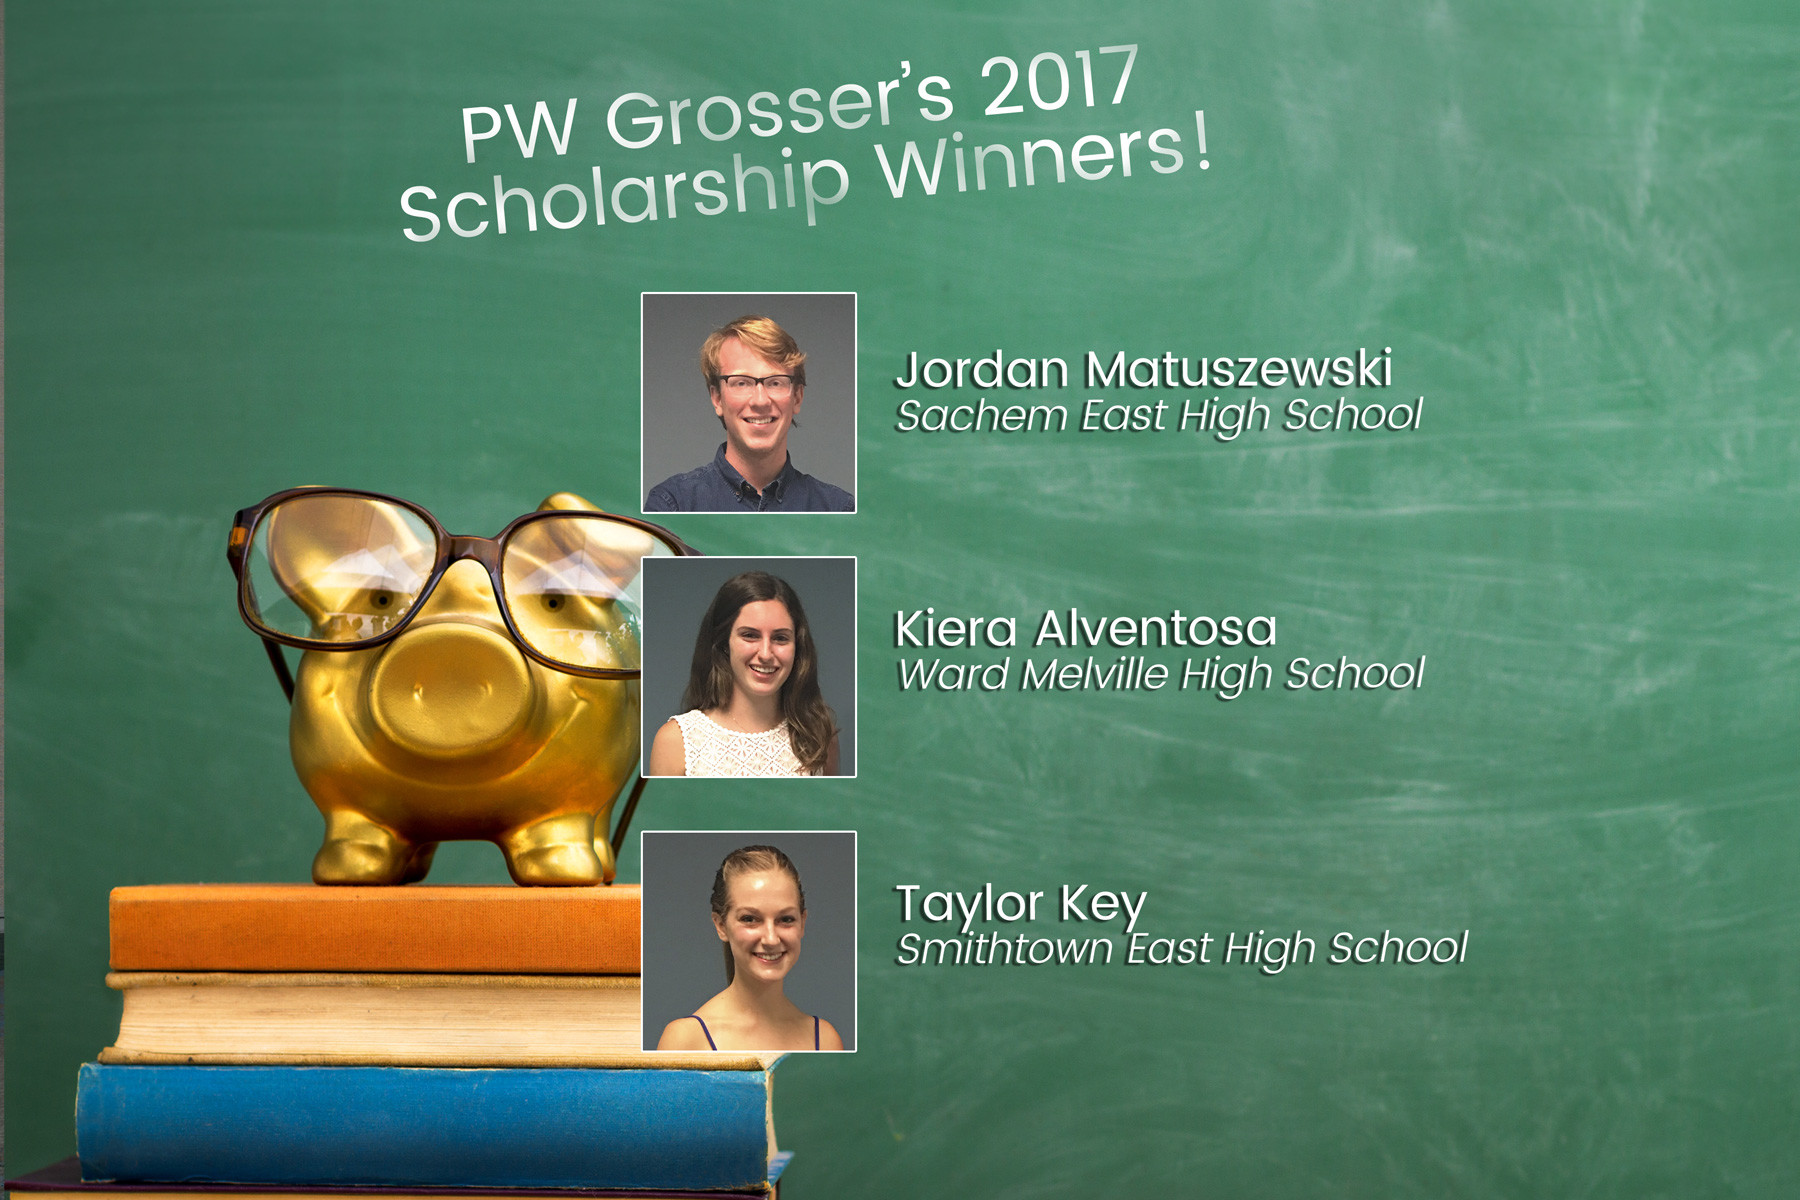 PW Grosser 2017 Scholarship winners